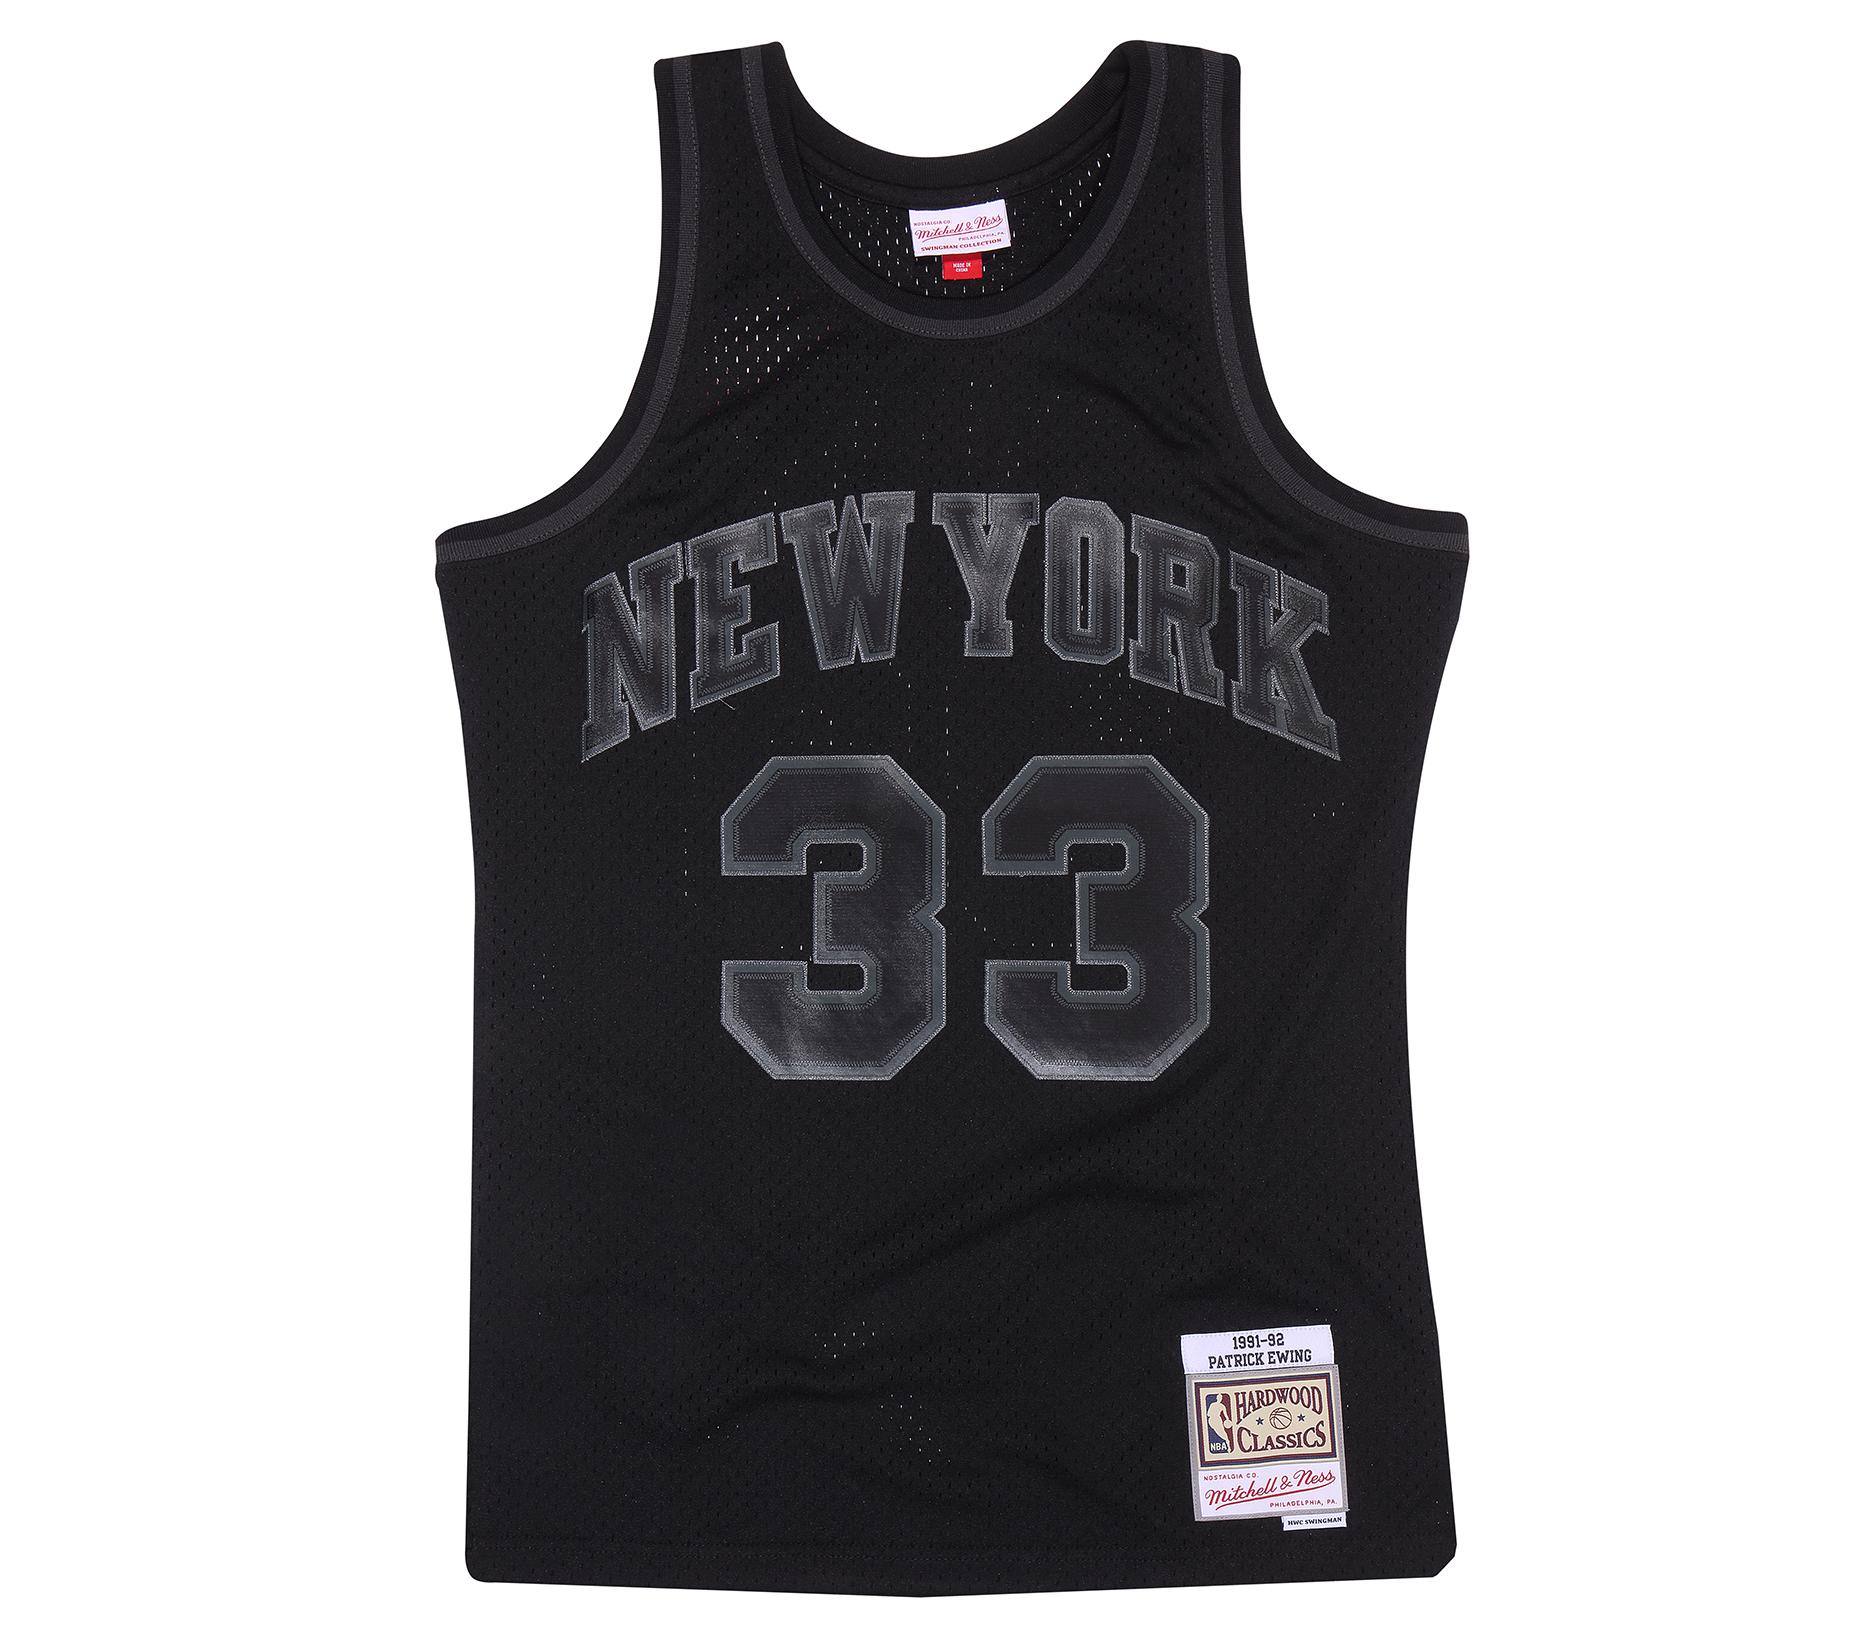 huge discount 5f29c 42302 Mitchell & Ness | Stephen Curry 2009-10 Golden State ...